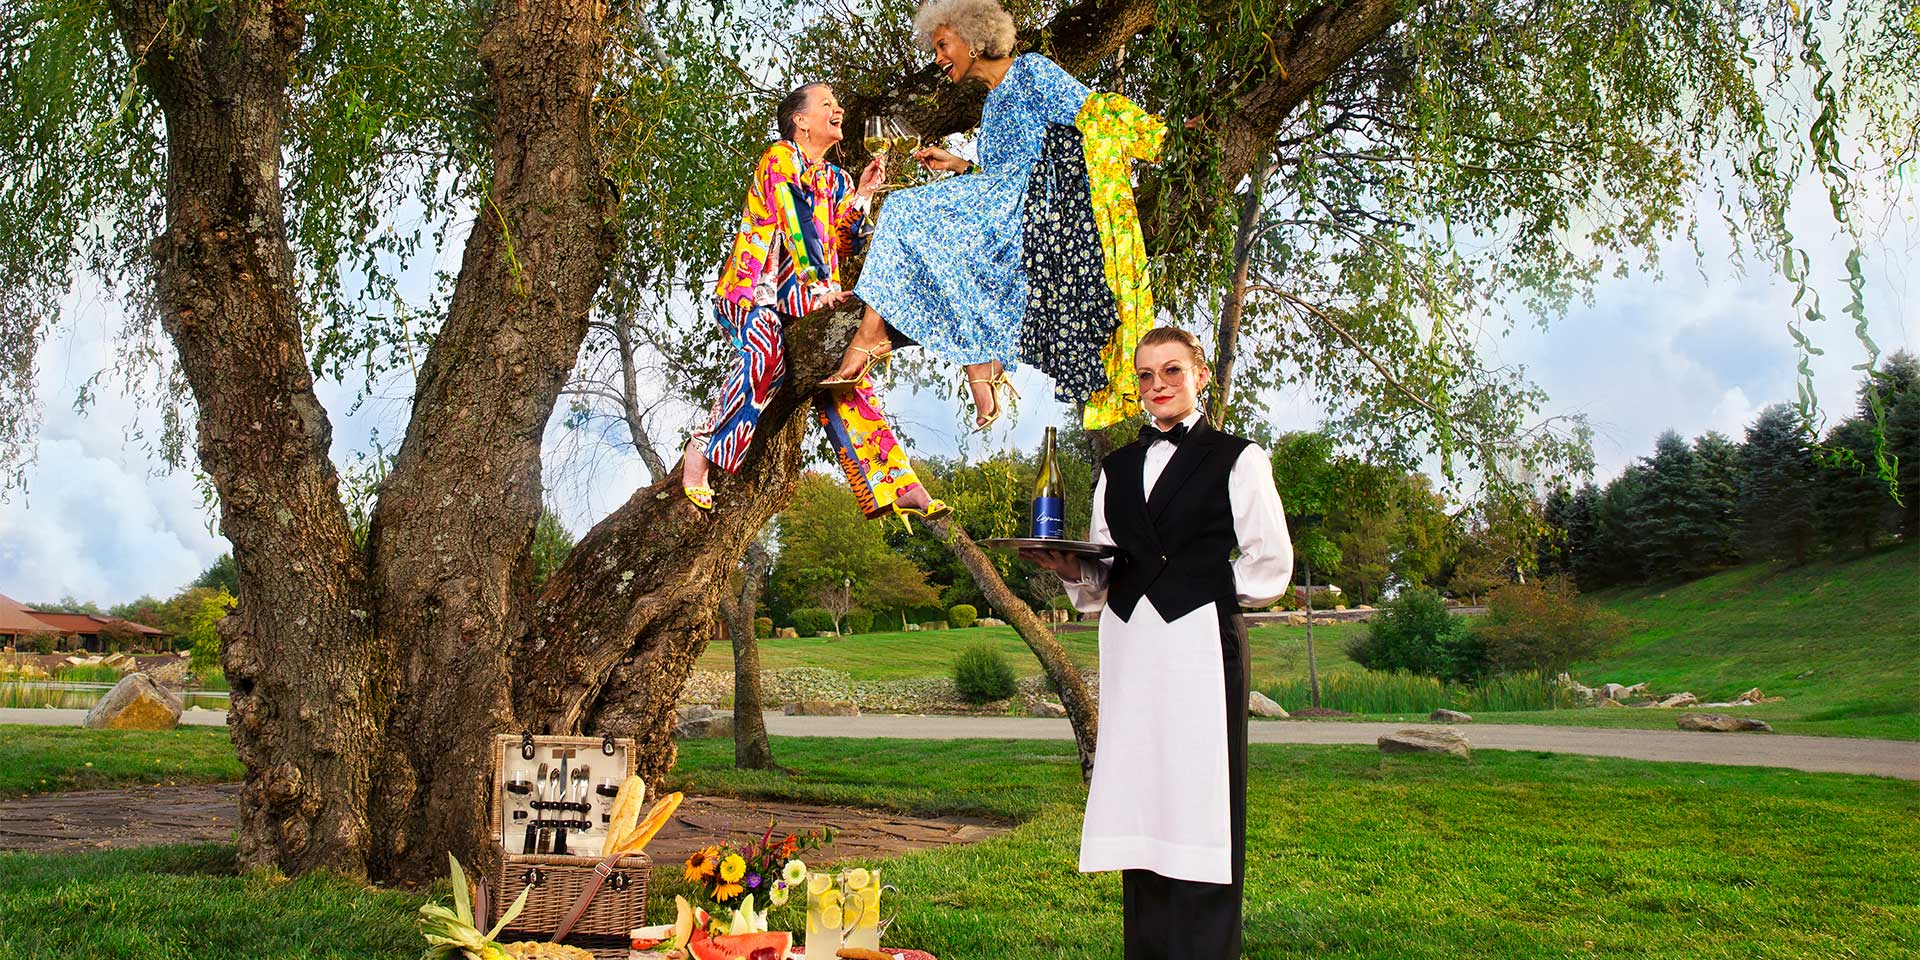 Two older women sit in a tree and enjoy a picnic on the ground catered to them by a woman standing in front of them with champagne in hand.